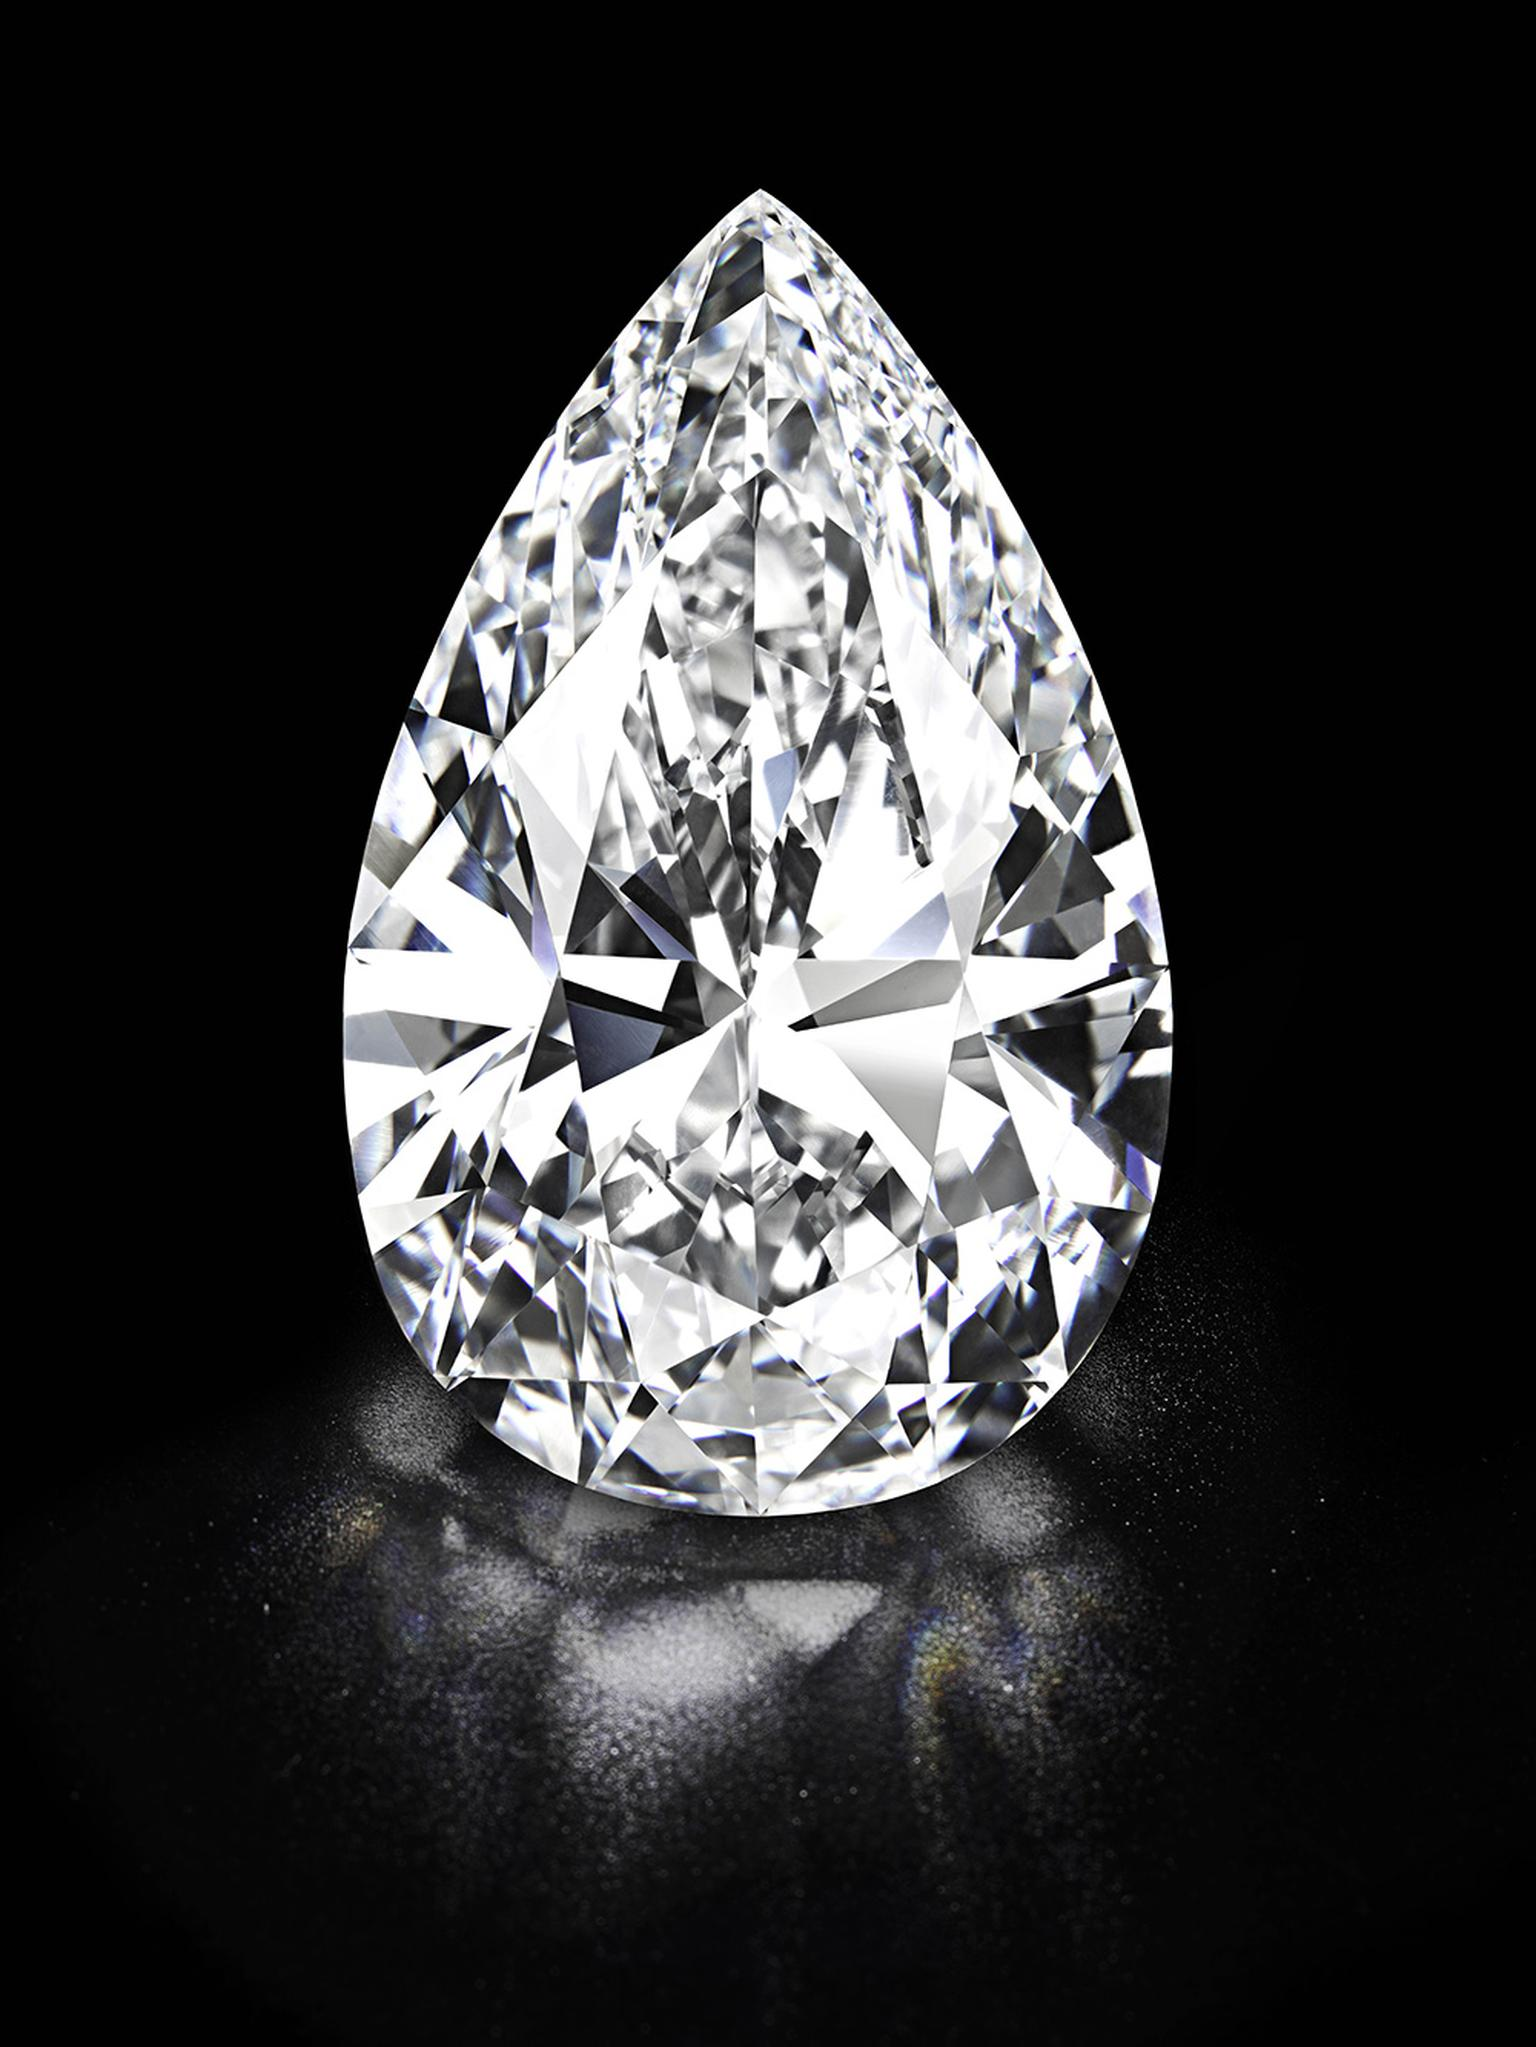 In May 2013, Harry Winston purchased a 101.73ct pear-shaped diamond known as the '101' at Christie's in Geneva for US$26.7 million. It held the world record for the most valuable colourless diamond ever sold at auction until a D colour, flawless, Type IIA